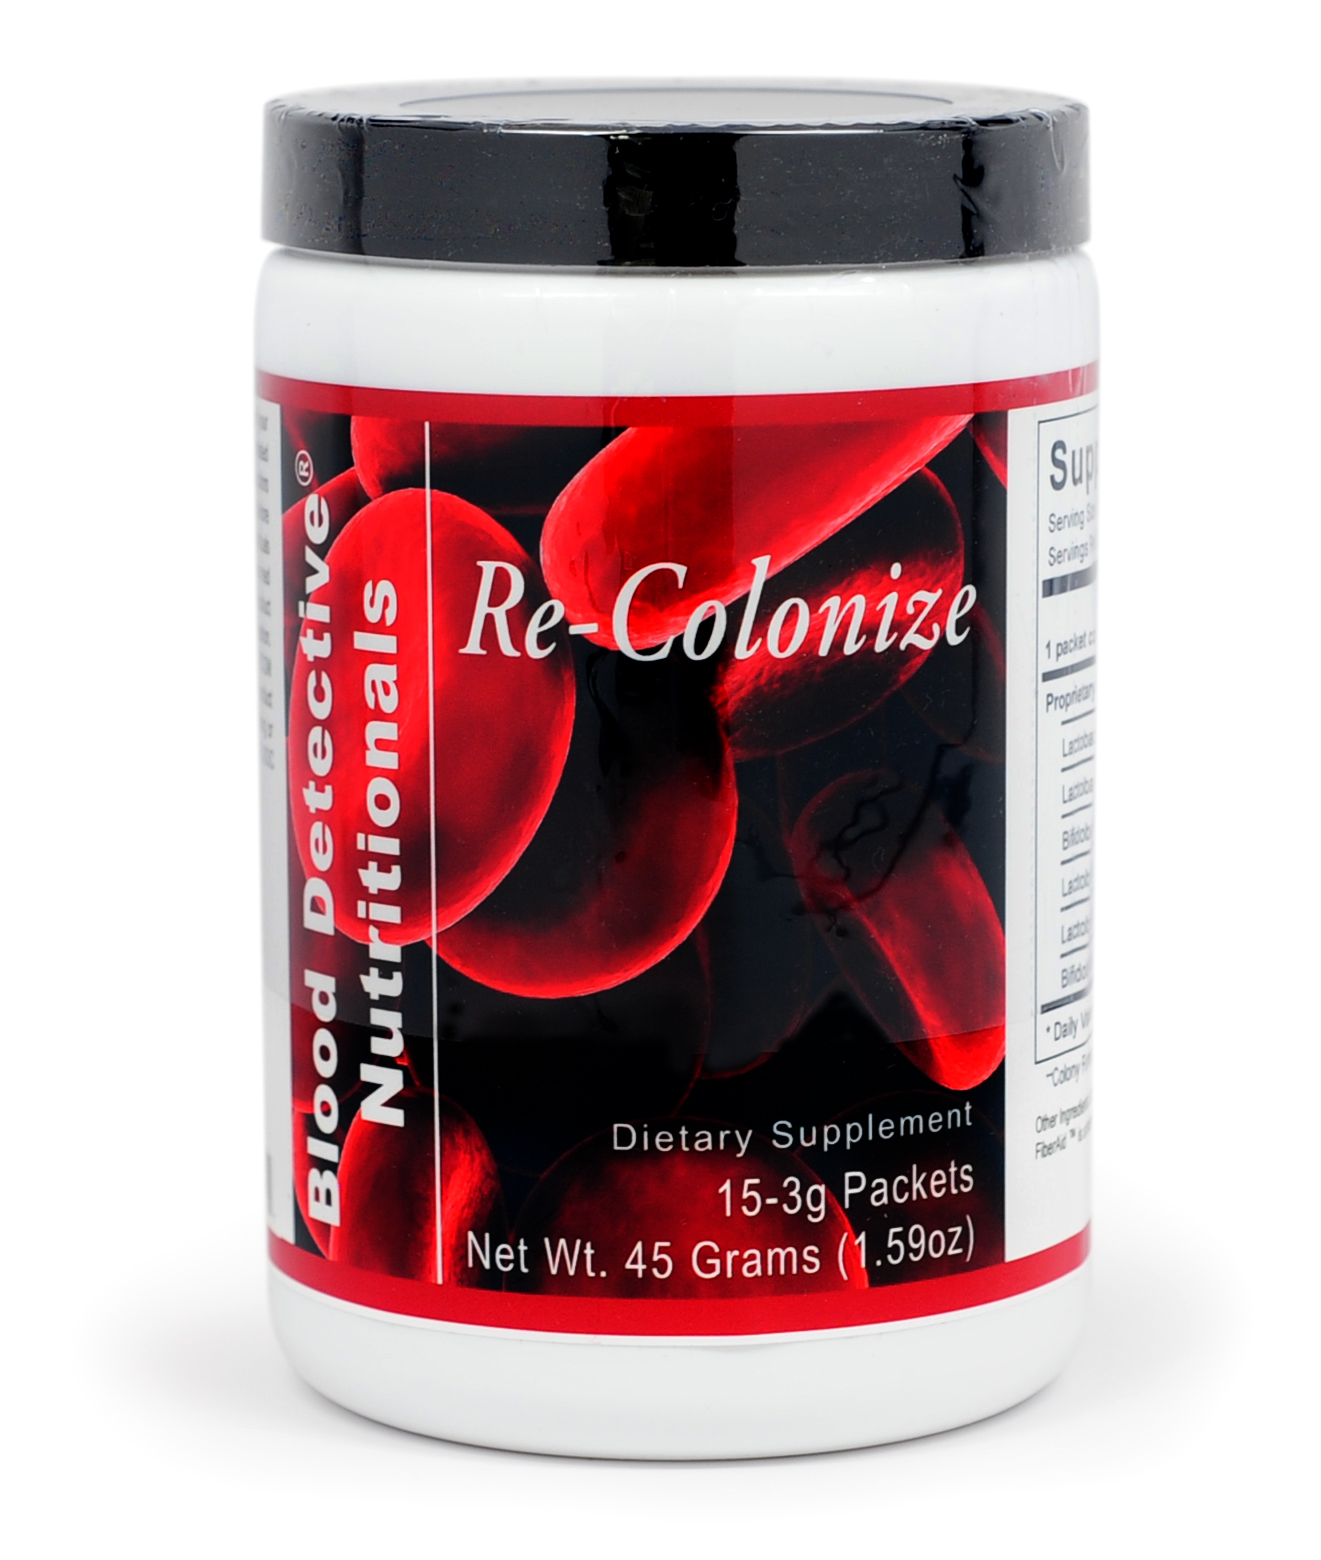 THIS PRODUCT HAS BEEN DISCONTINUED. SUGGESTED REPLACEMENT IS DTOX COLONIZE SI